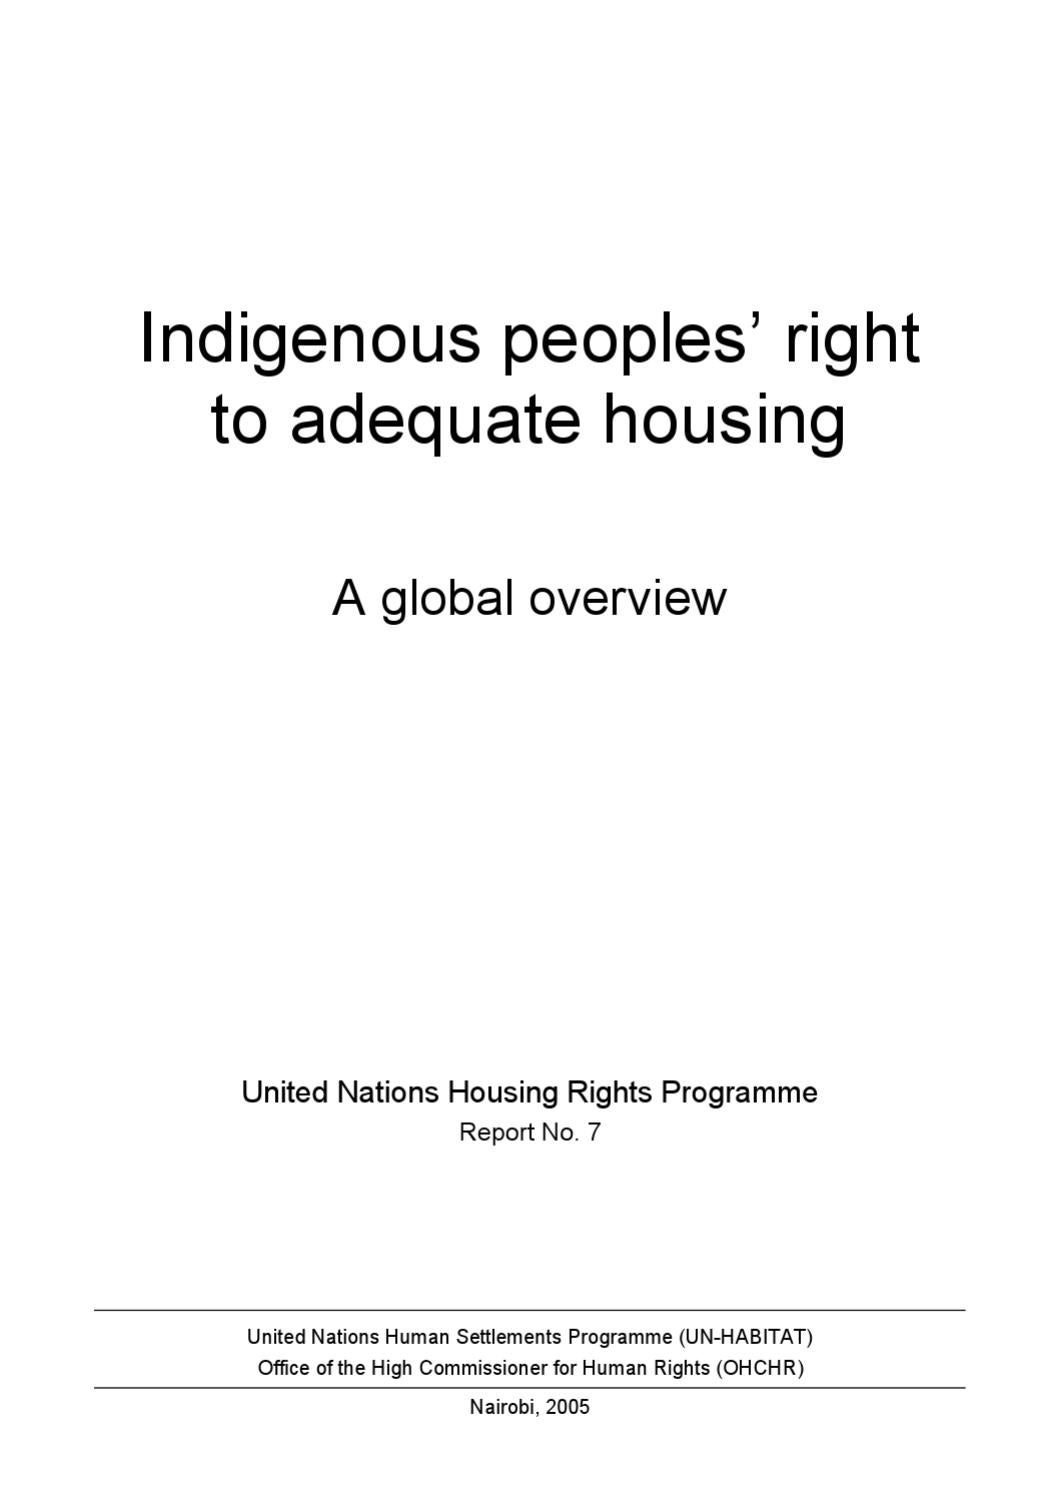 Indigenous Peoples Right To Adequate Housing A Global Overview